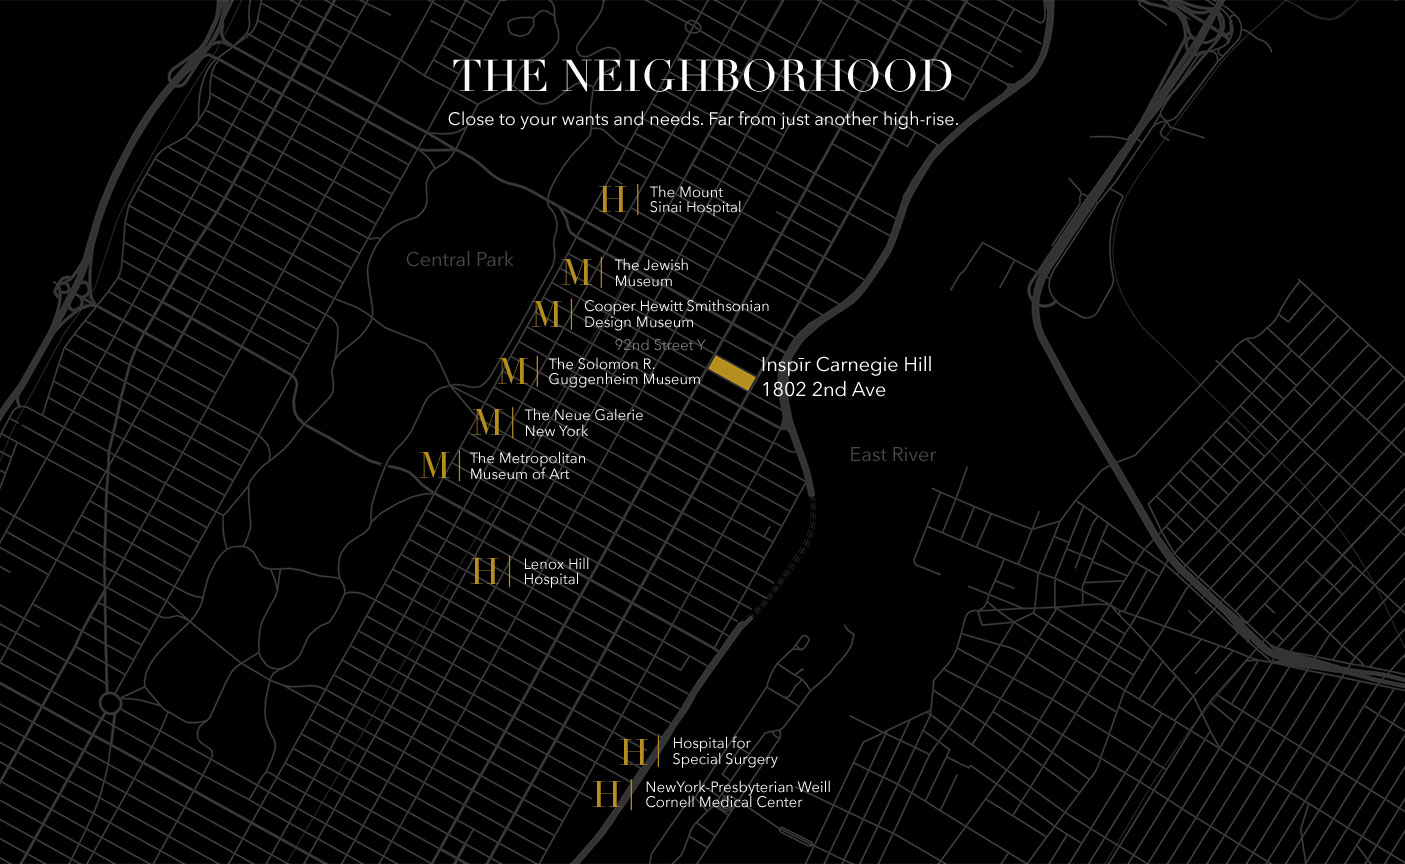 Map showing locations of 4 hospitals and 5 museums in close proximity to Inspire Carnegie Hill